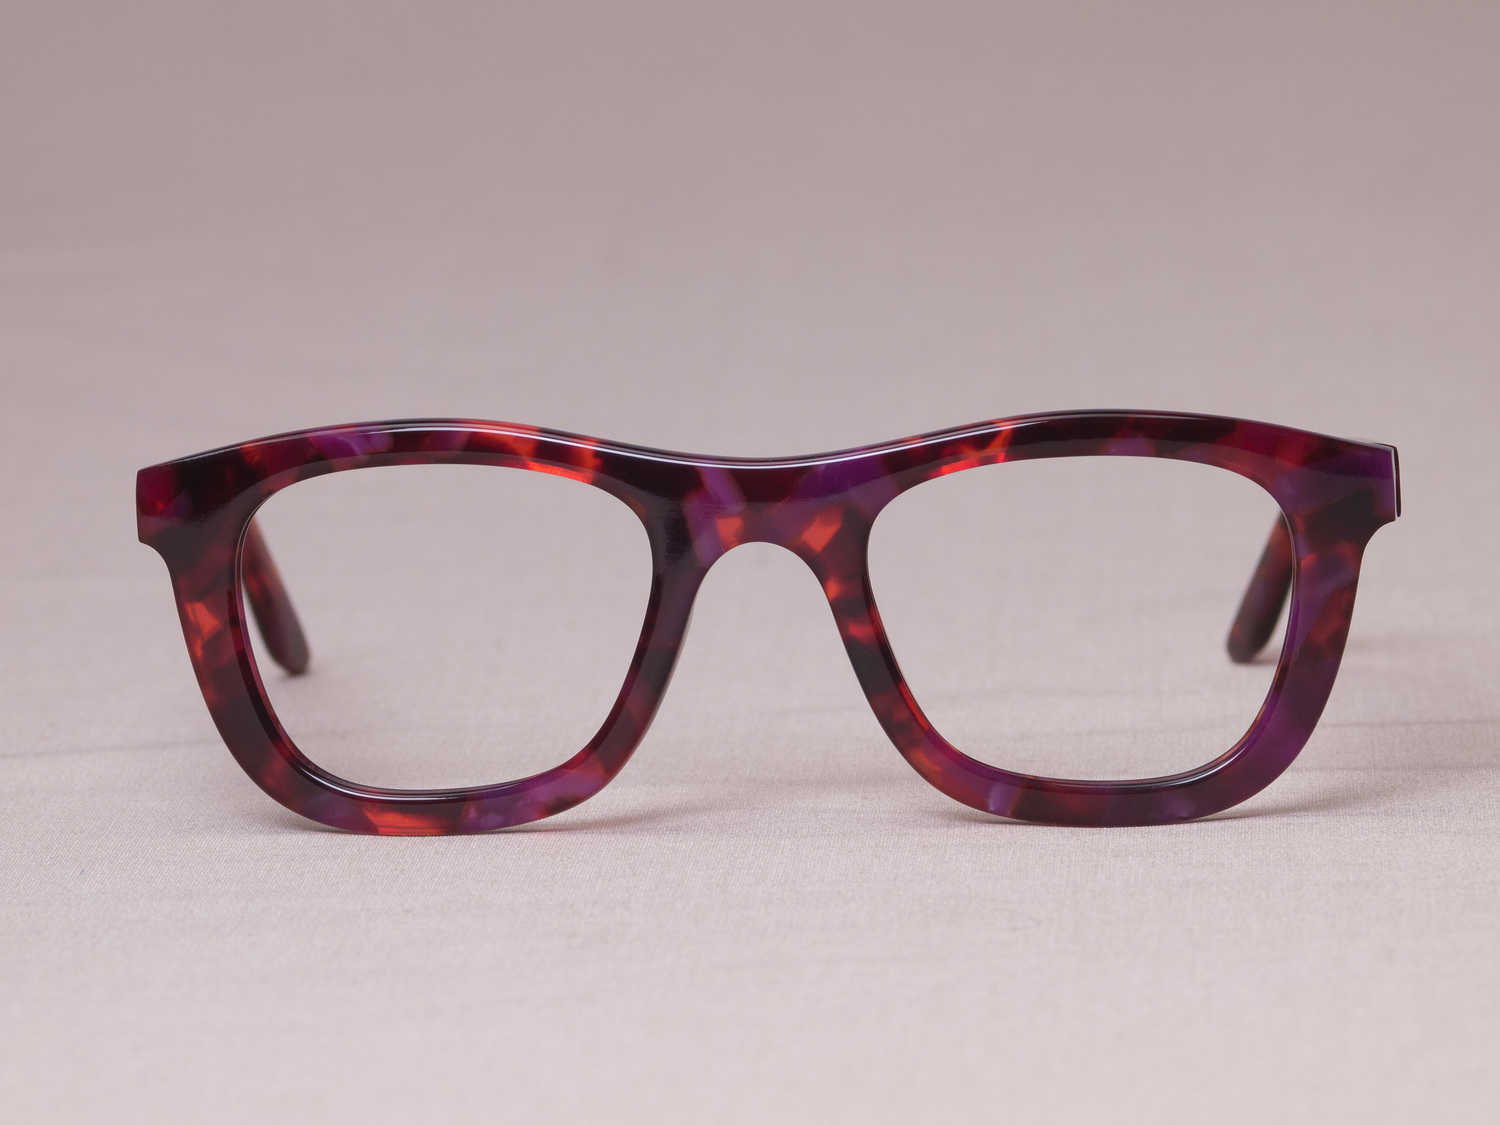 Indivijual-Custom-Glasses-4.jpg